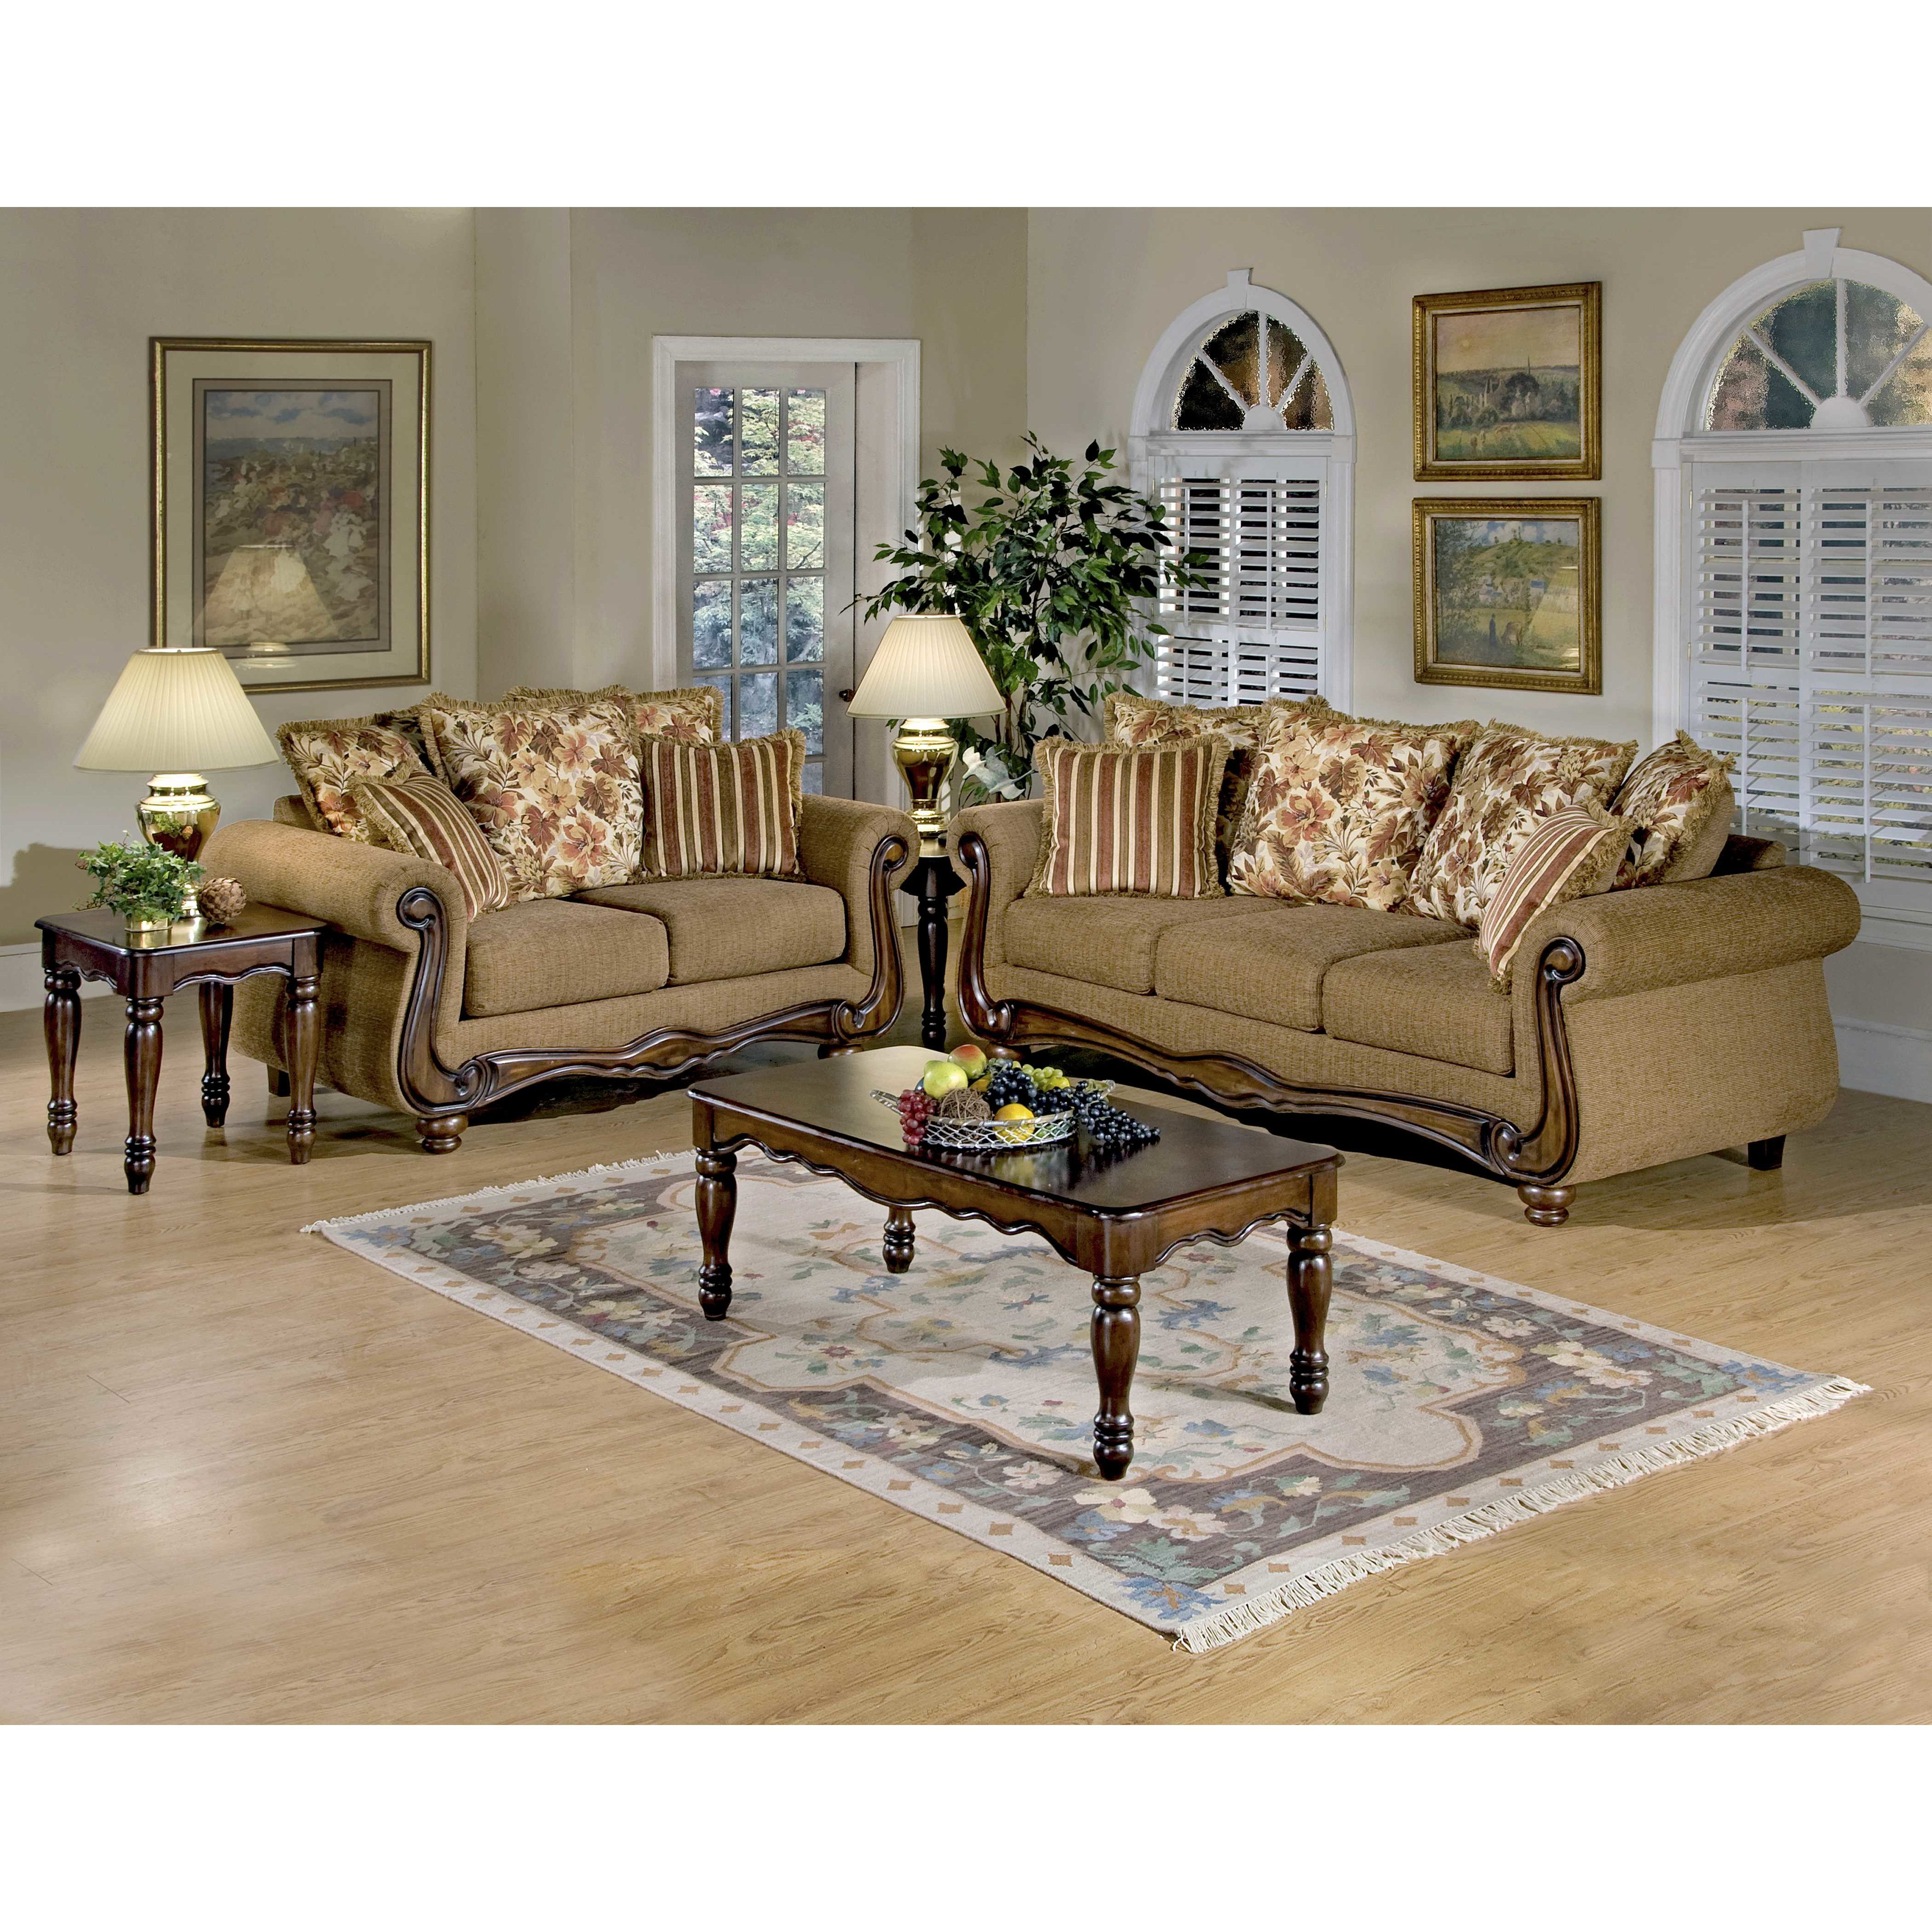 Serta Upholstery Living Room Collection Part 5